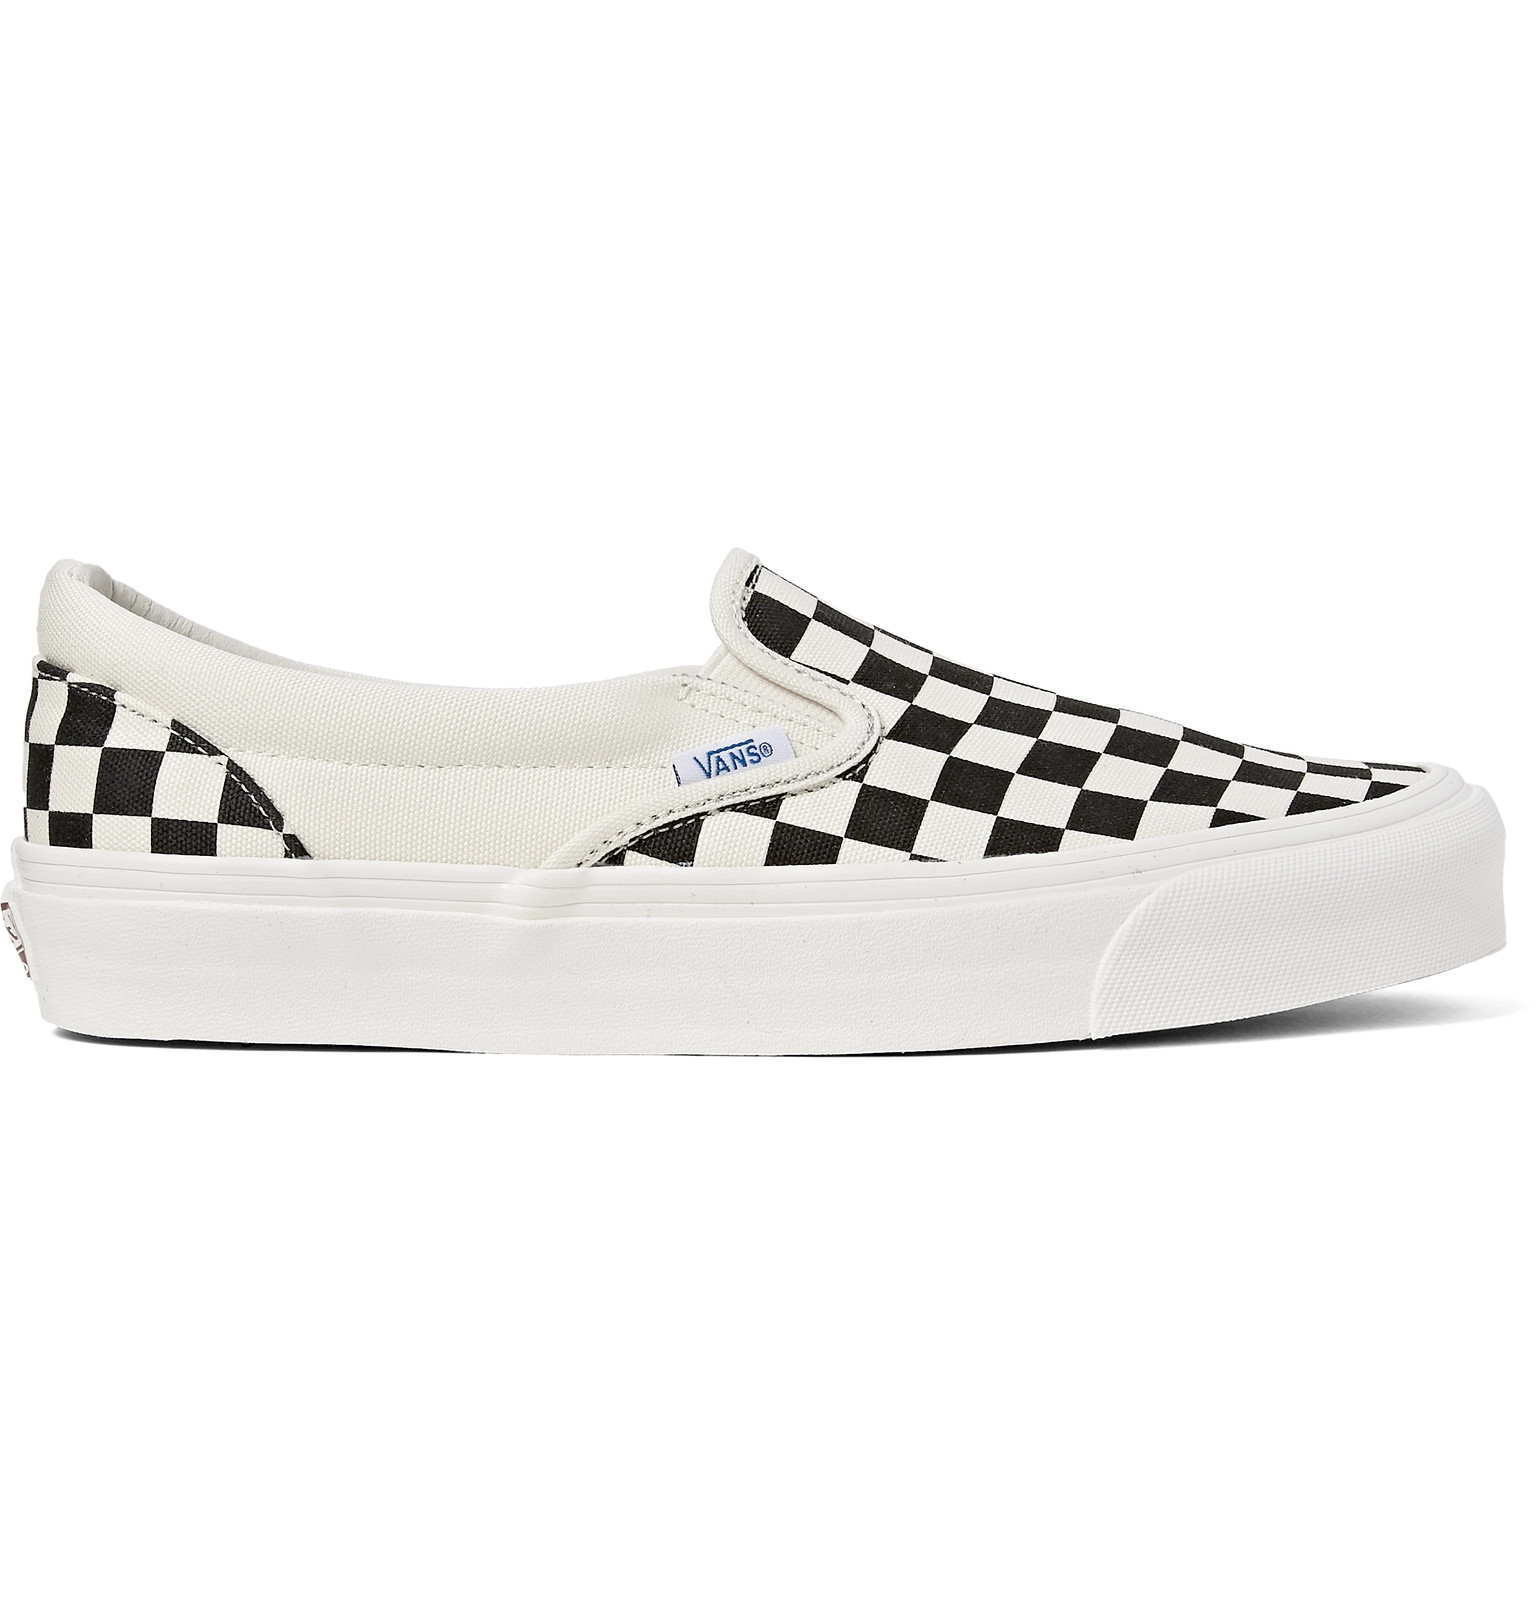 Vans - OG Classic LX Checkerboard Canvas Slip-On Sneakers 18a50f403